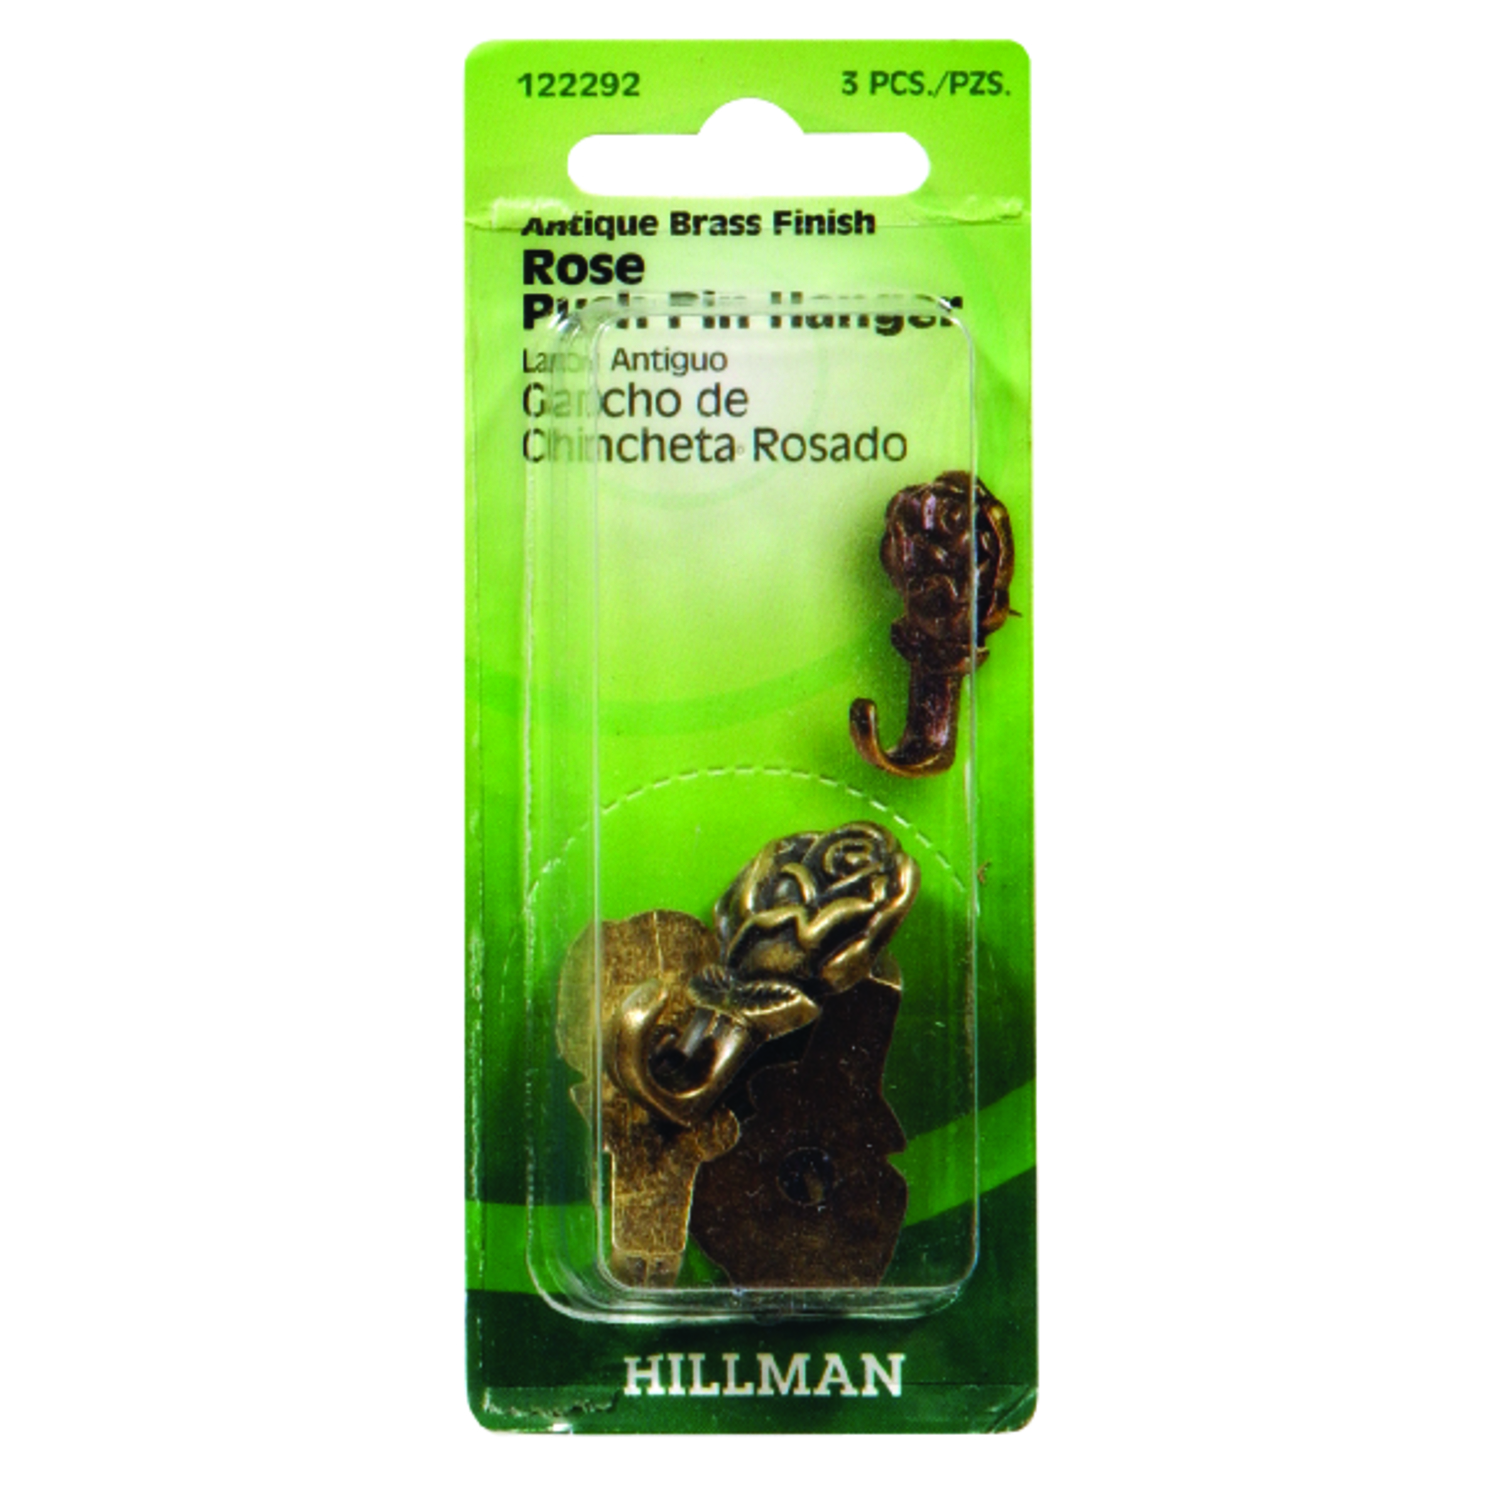 HILLMAN  AnchorWire  Gilt  Steel  Picture Hook  20 lb. 3 pk Push Pin